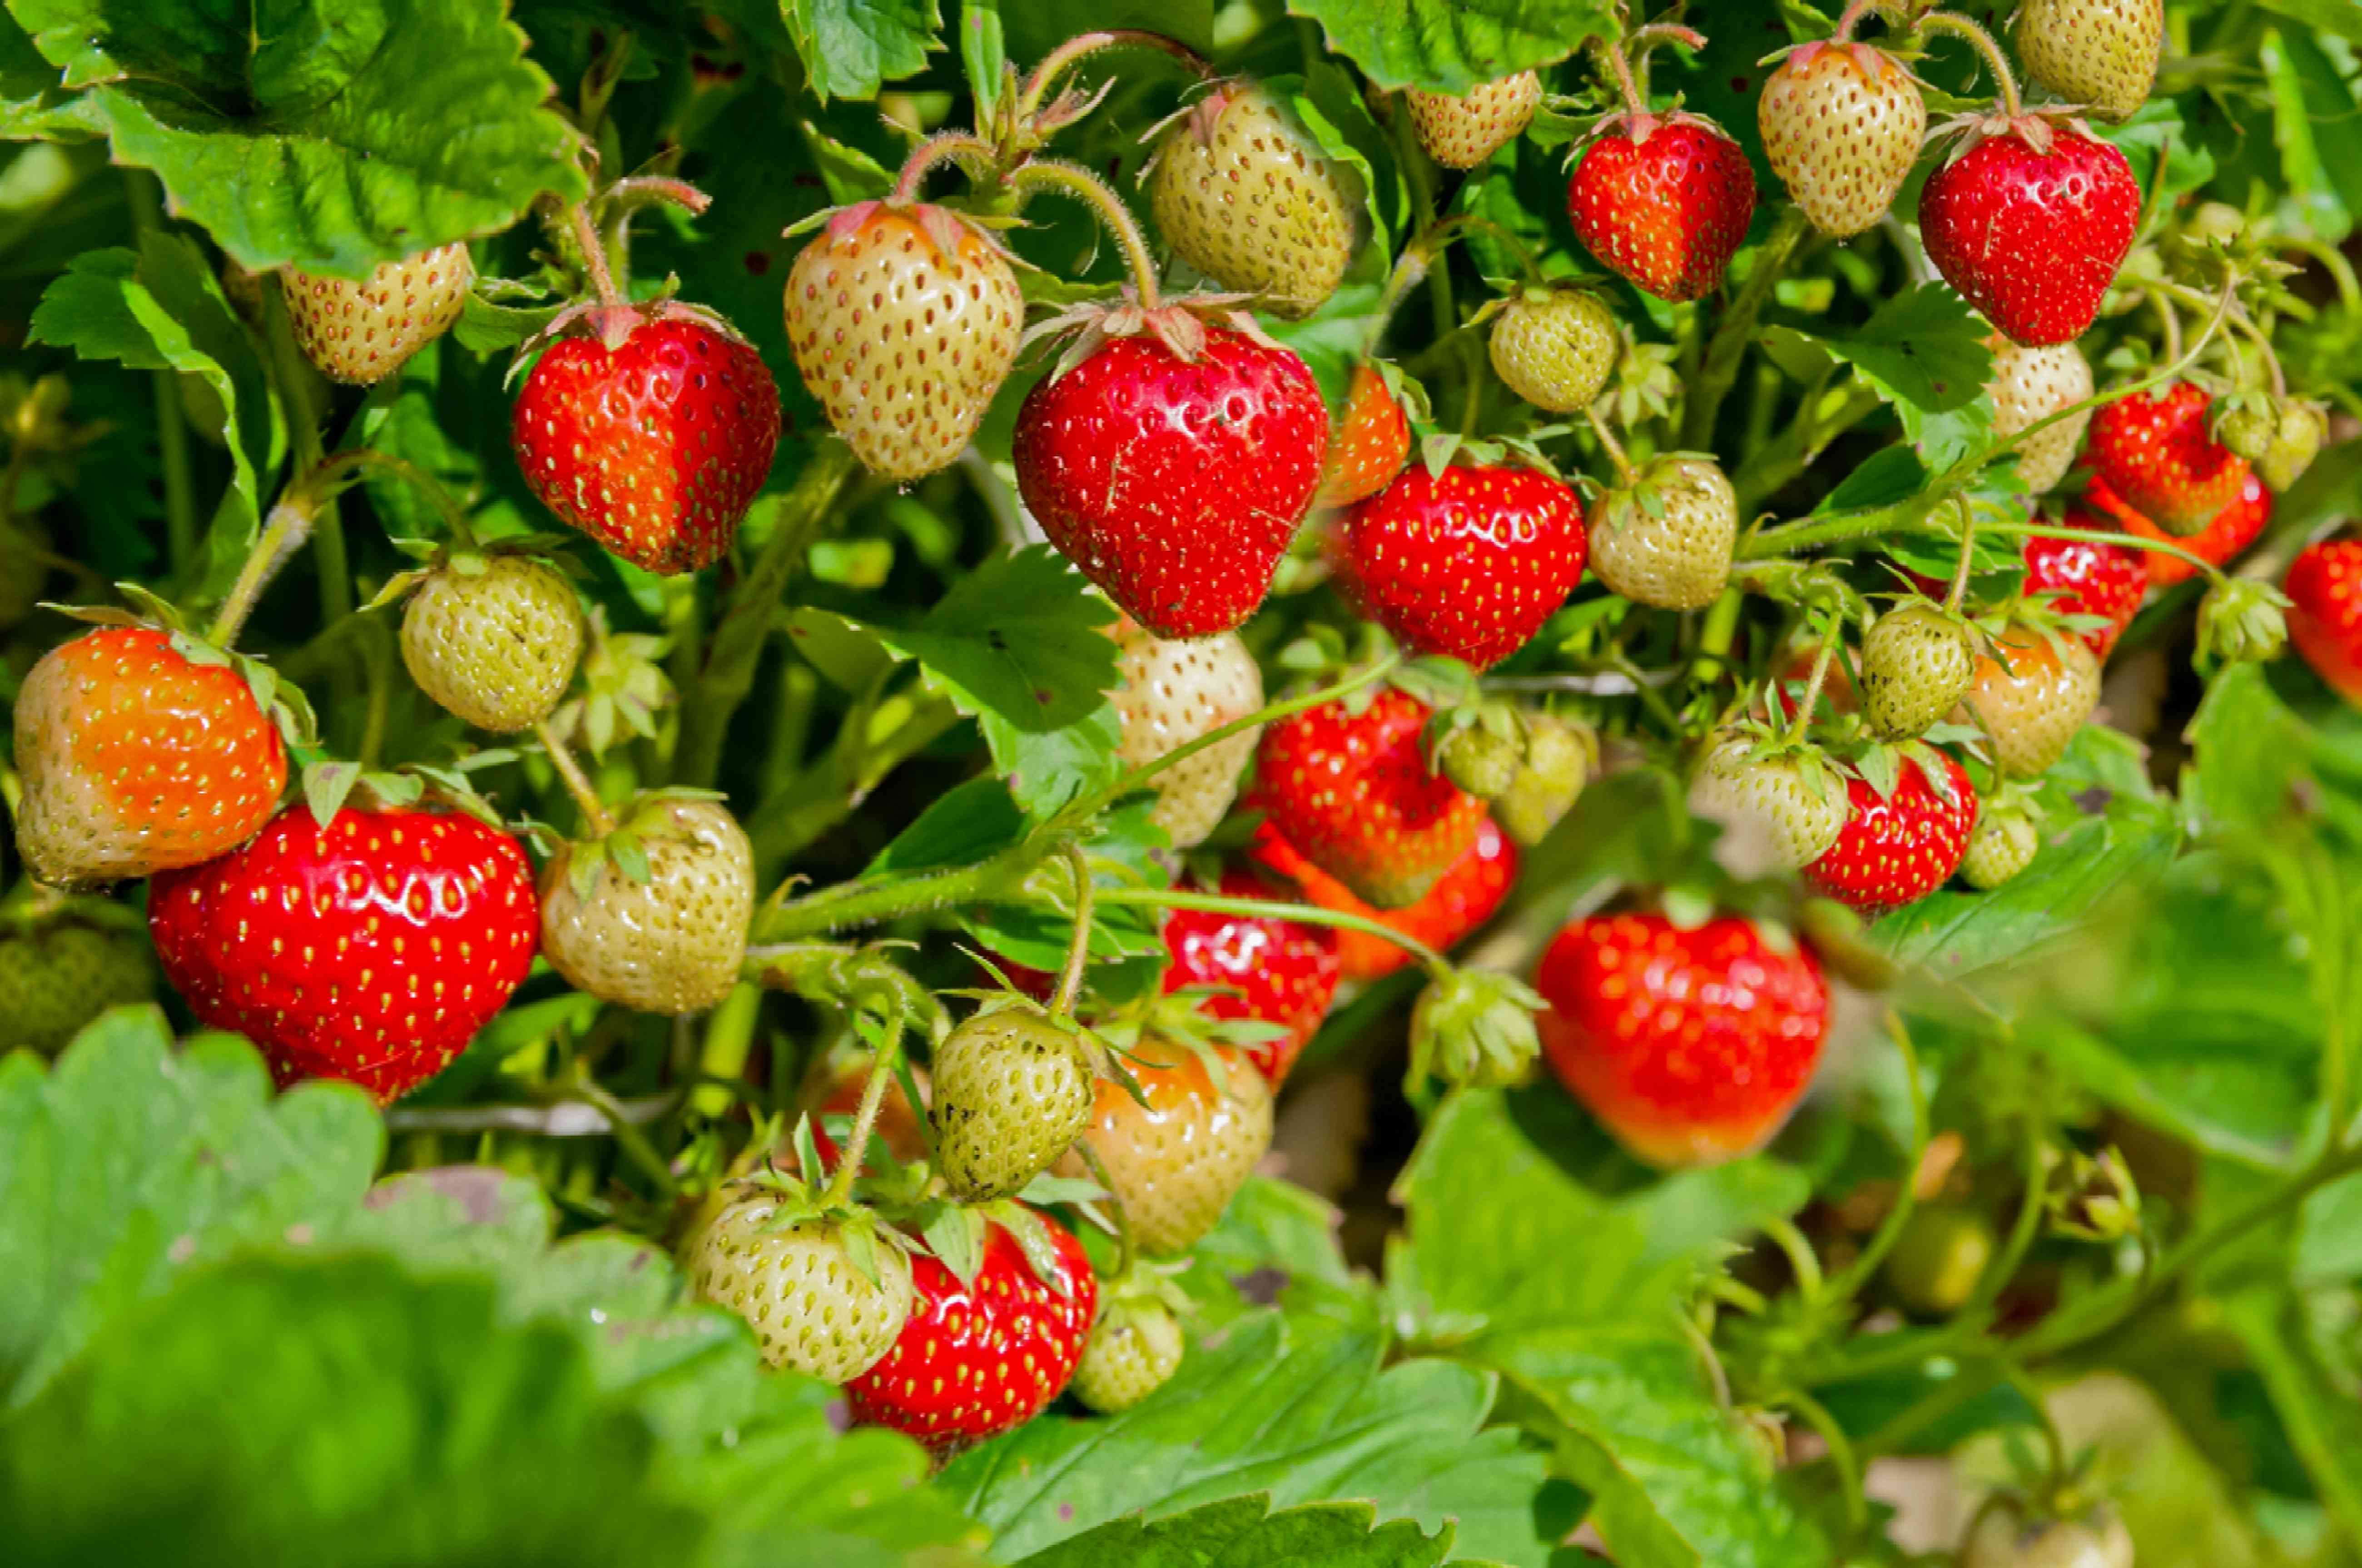 strawberries at different ripening stages